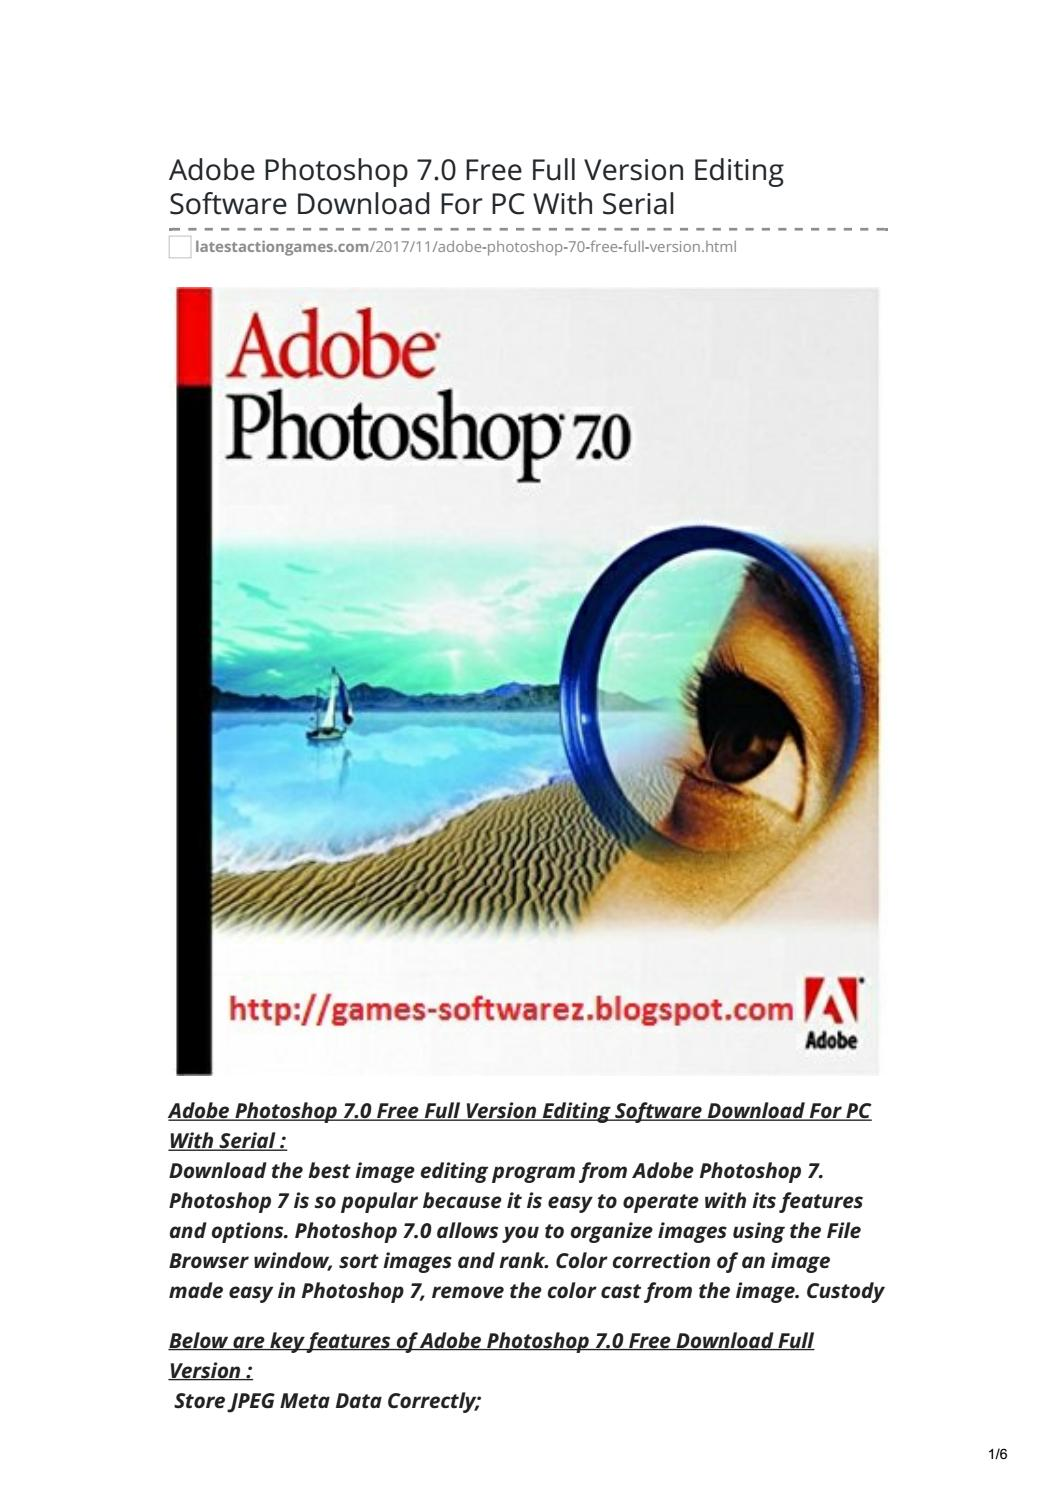 Adobe Photoshop 7 : adobe, photoshop, Adobe, Photoshop, Version, Editing, Software, Download, Serial, Latest-Action-Games, Issuu